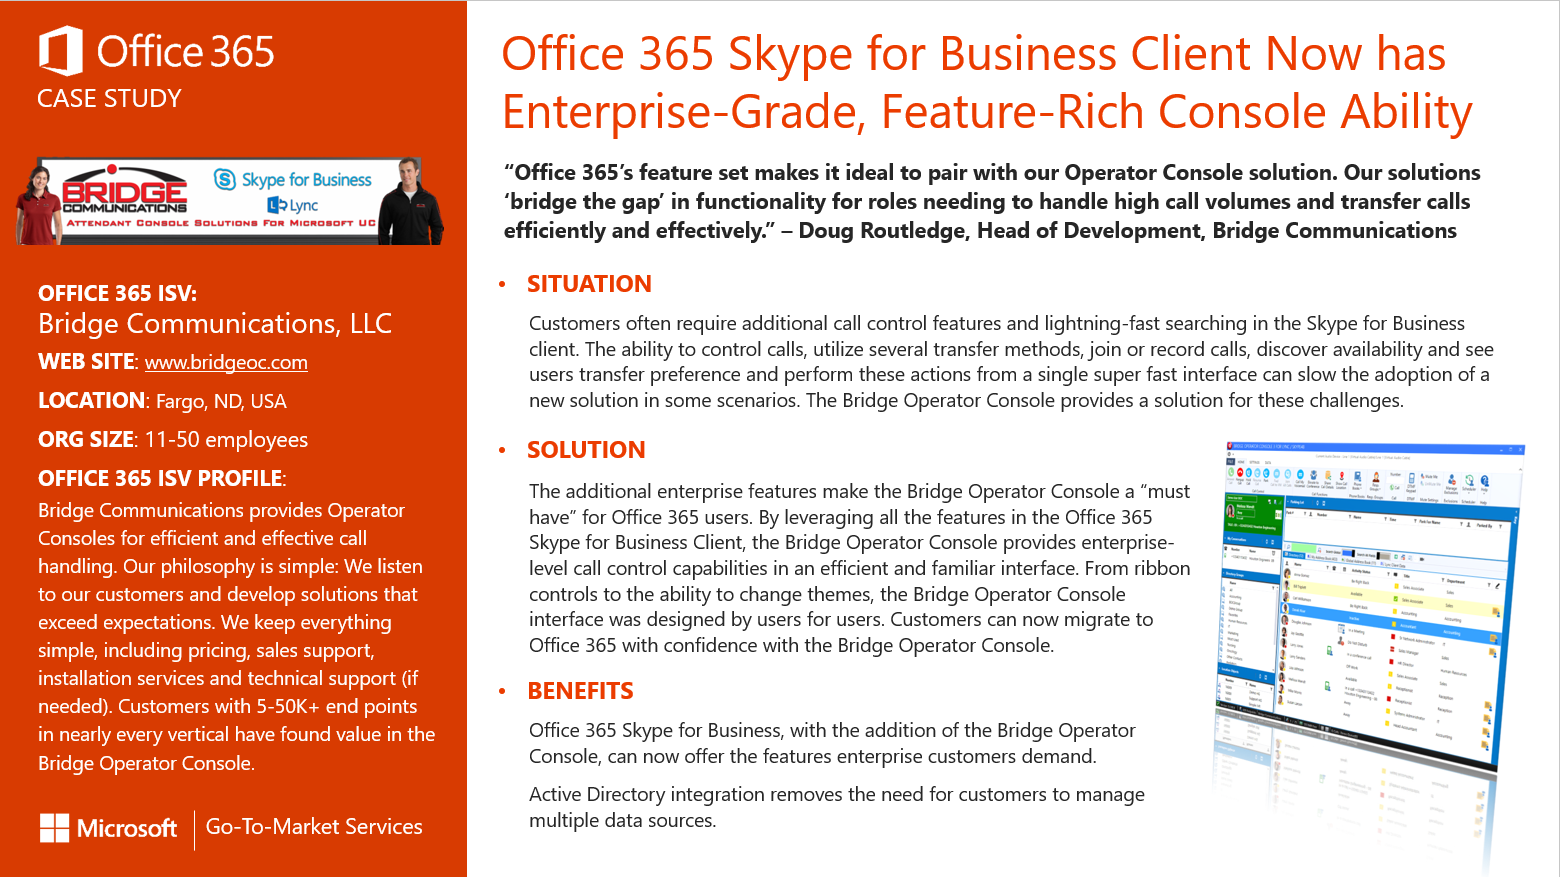 Microsoft Skype for Business Go To Market Services